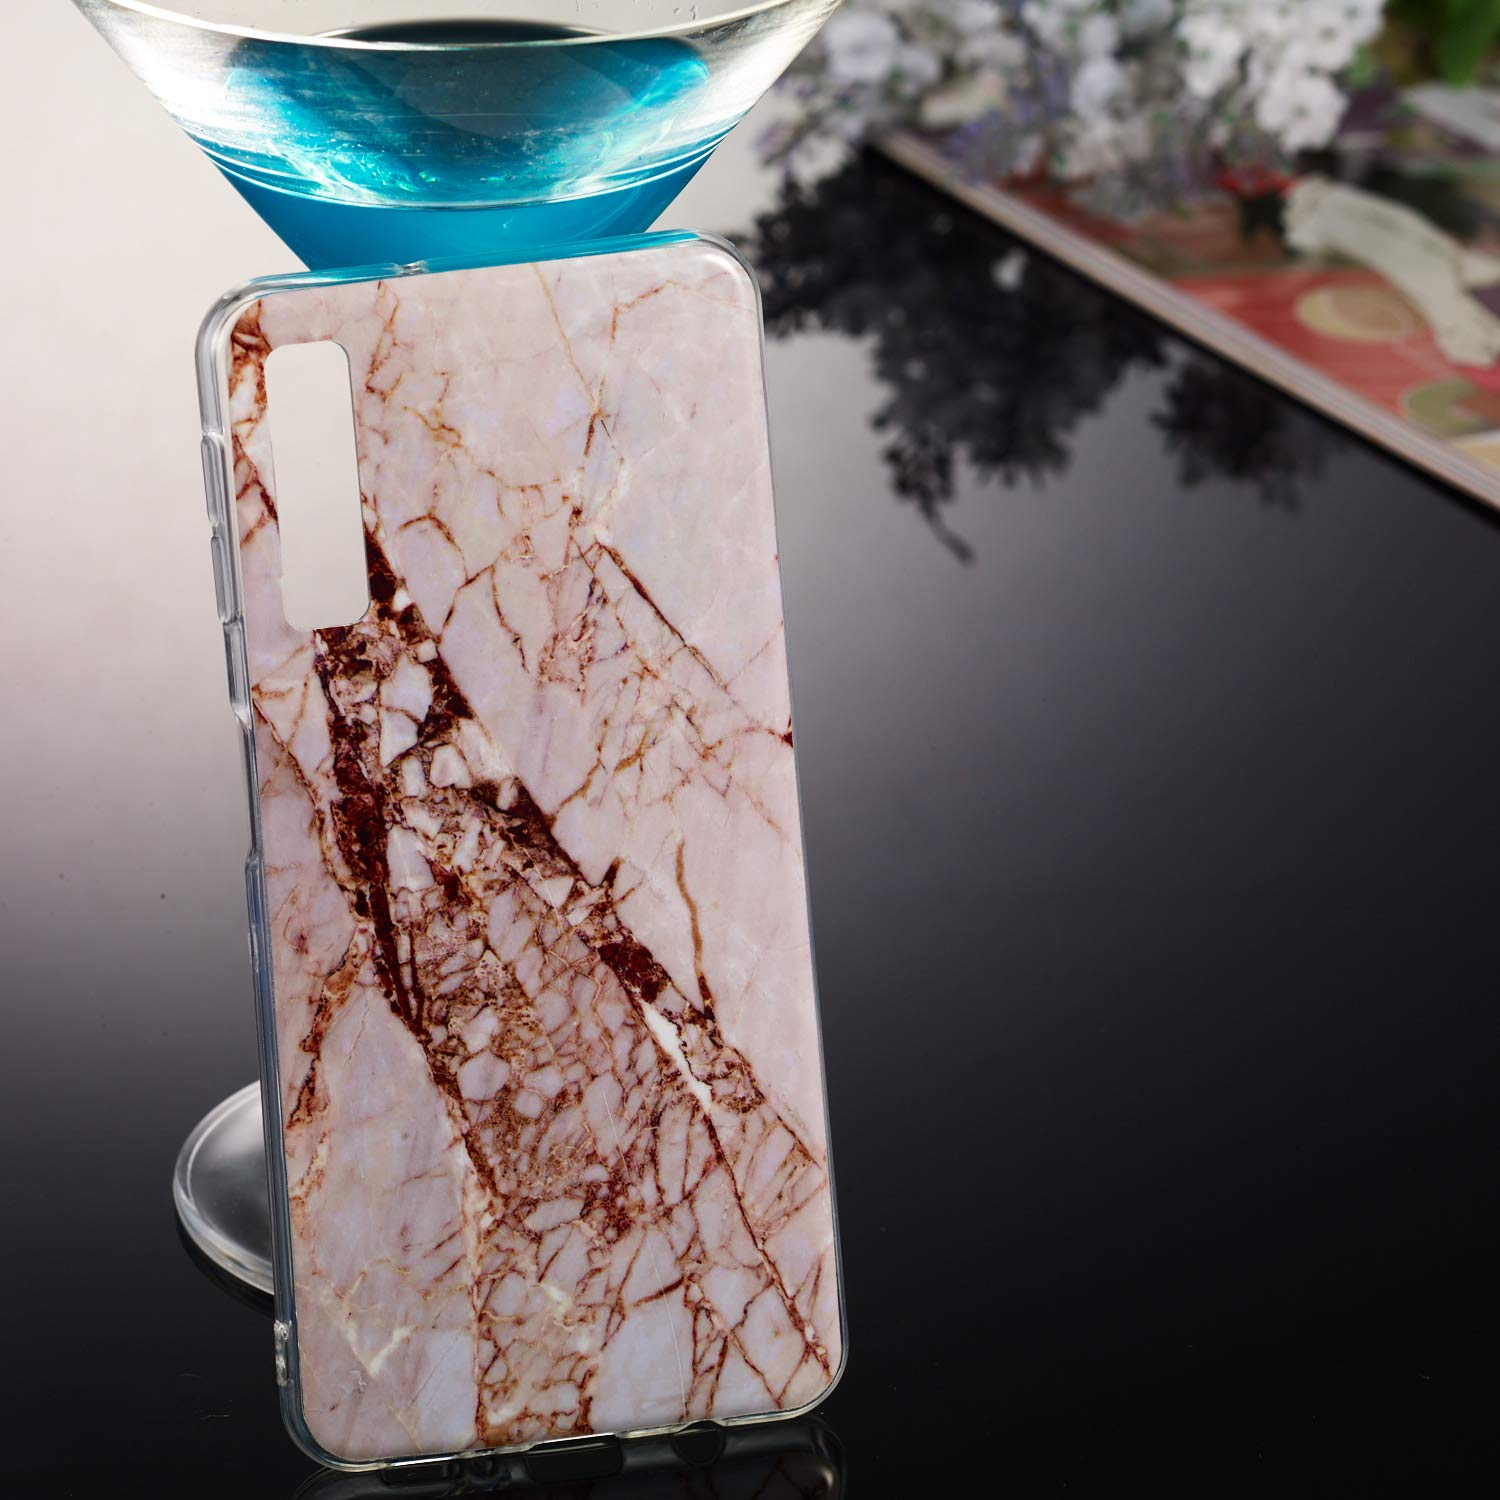 for Samsung Galaxy A7 2018 (A750) Marble Case with Screen Protector,Unique Pattern Design Skin Ultra Thin Slim Fit Soft Gel Silicone Case,QFFUN Shockproof Anti-Scratch Protective Back Cover - White by QFFUN (Image #5)